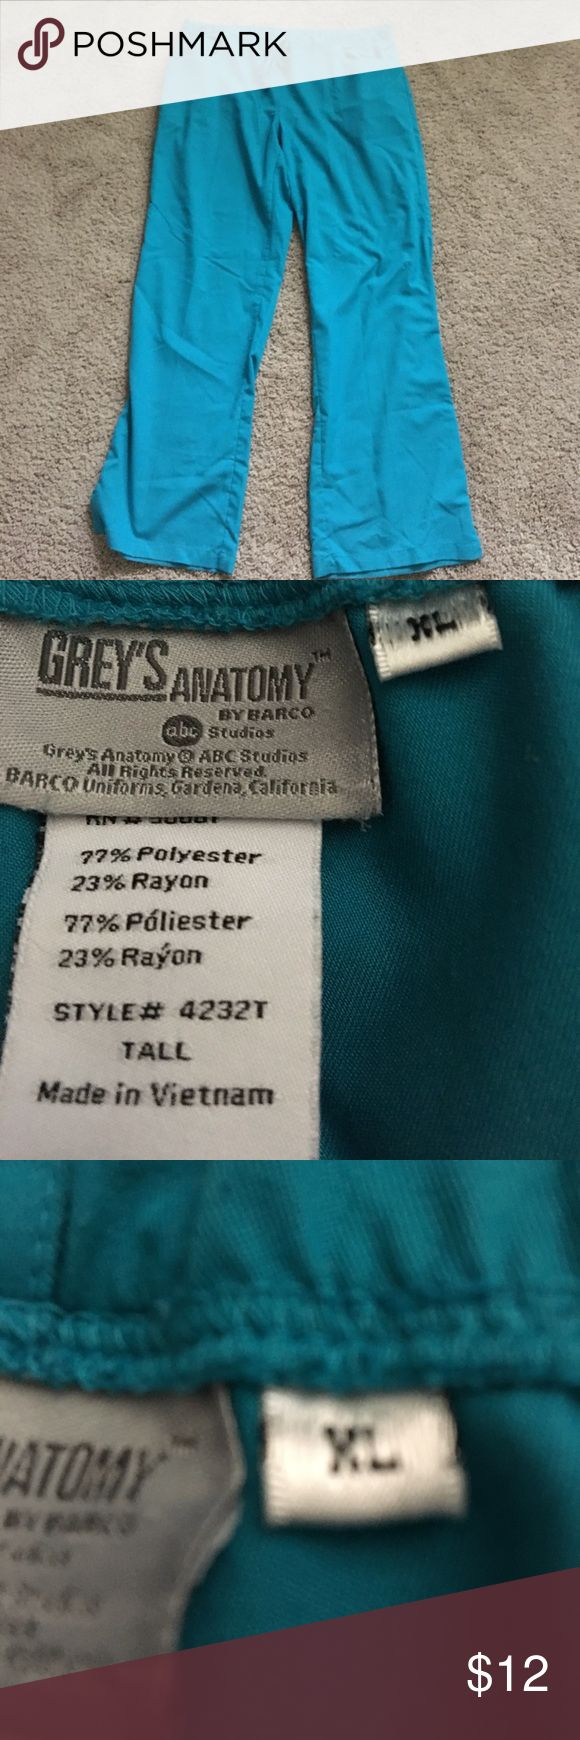 Grey's Anatomy size extra large tall scrub pants Grey's Anatomy size extra large tall scrub pants see my other scrubs  would like to bundle and save you money grey's Anatomy Pants